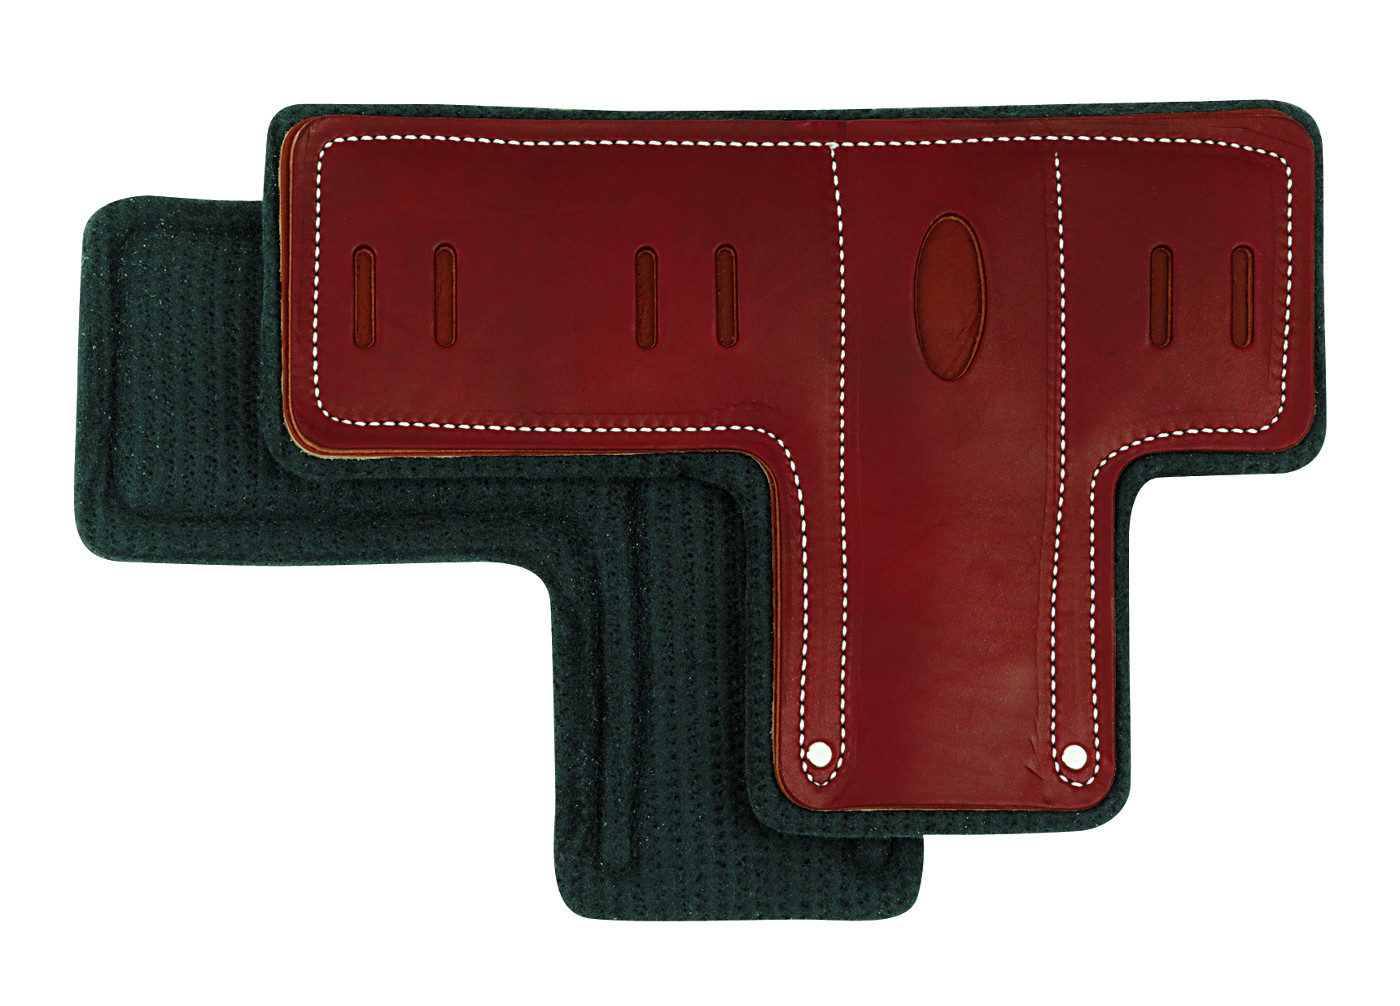 Pair of T-Shaped Climber Pads with Felt Liner